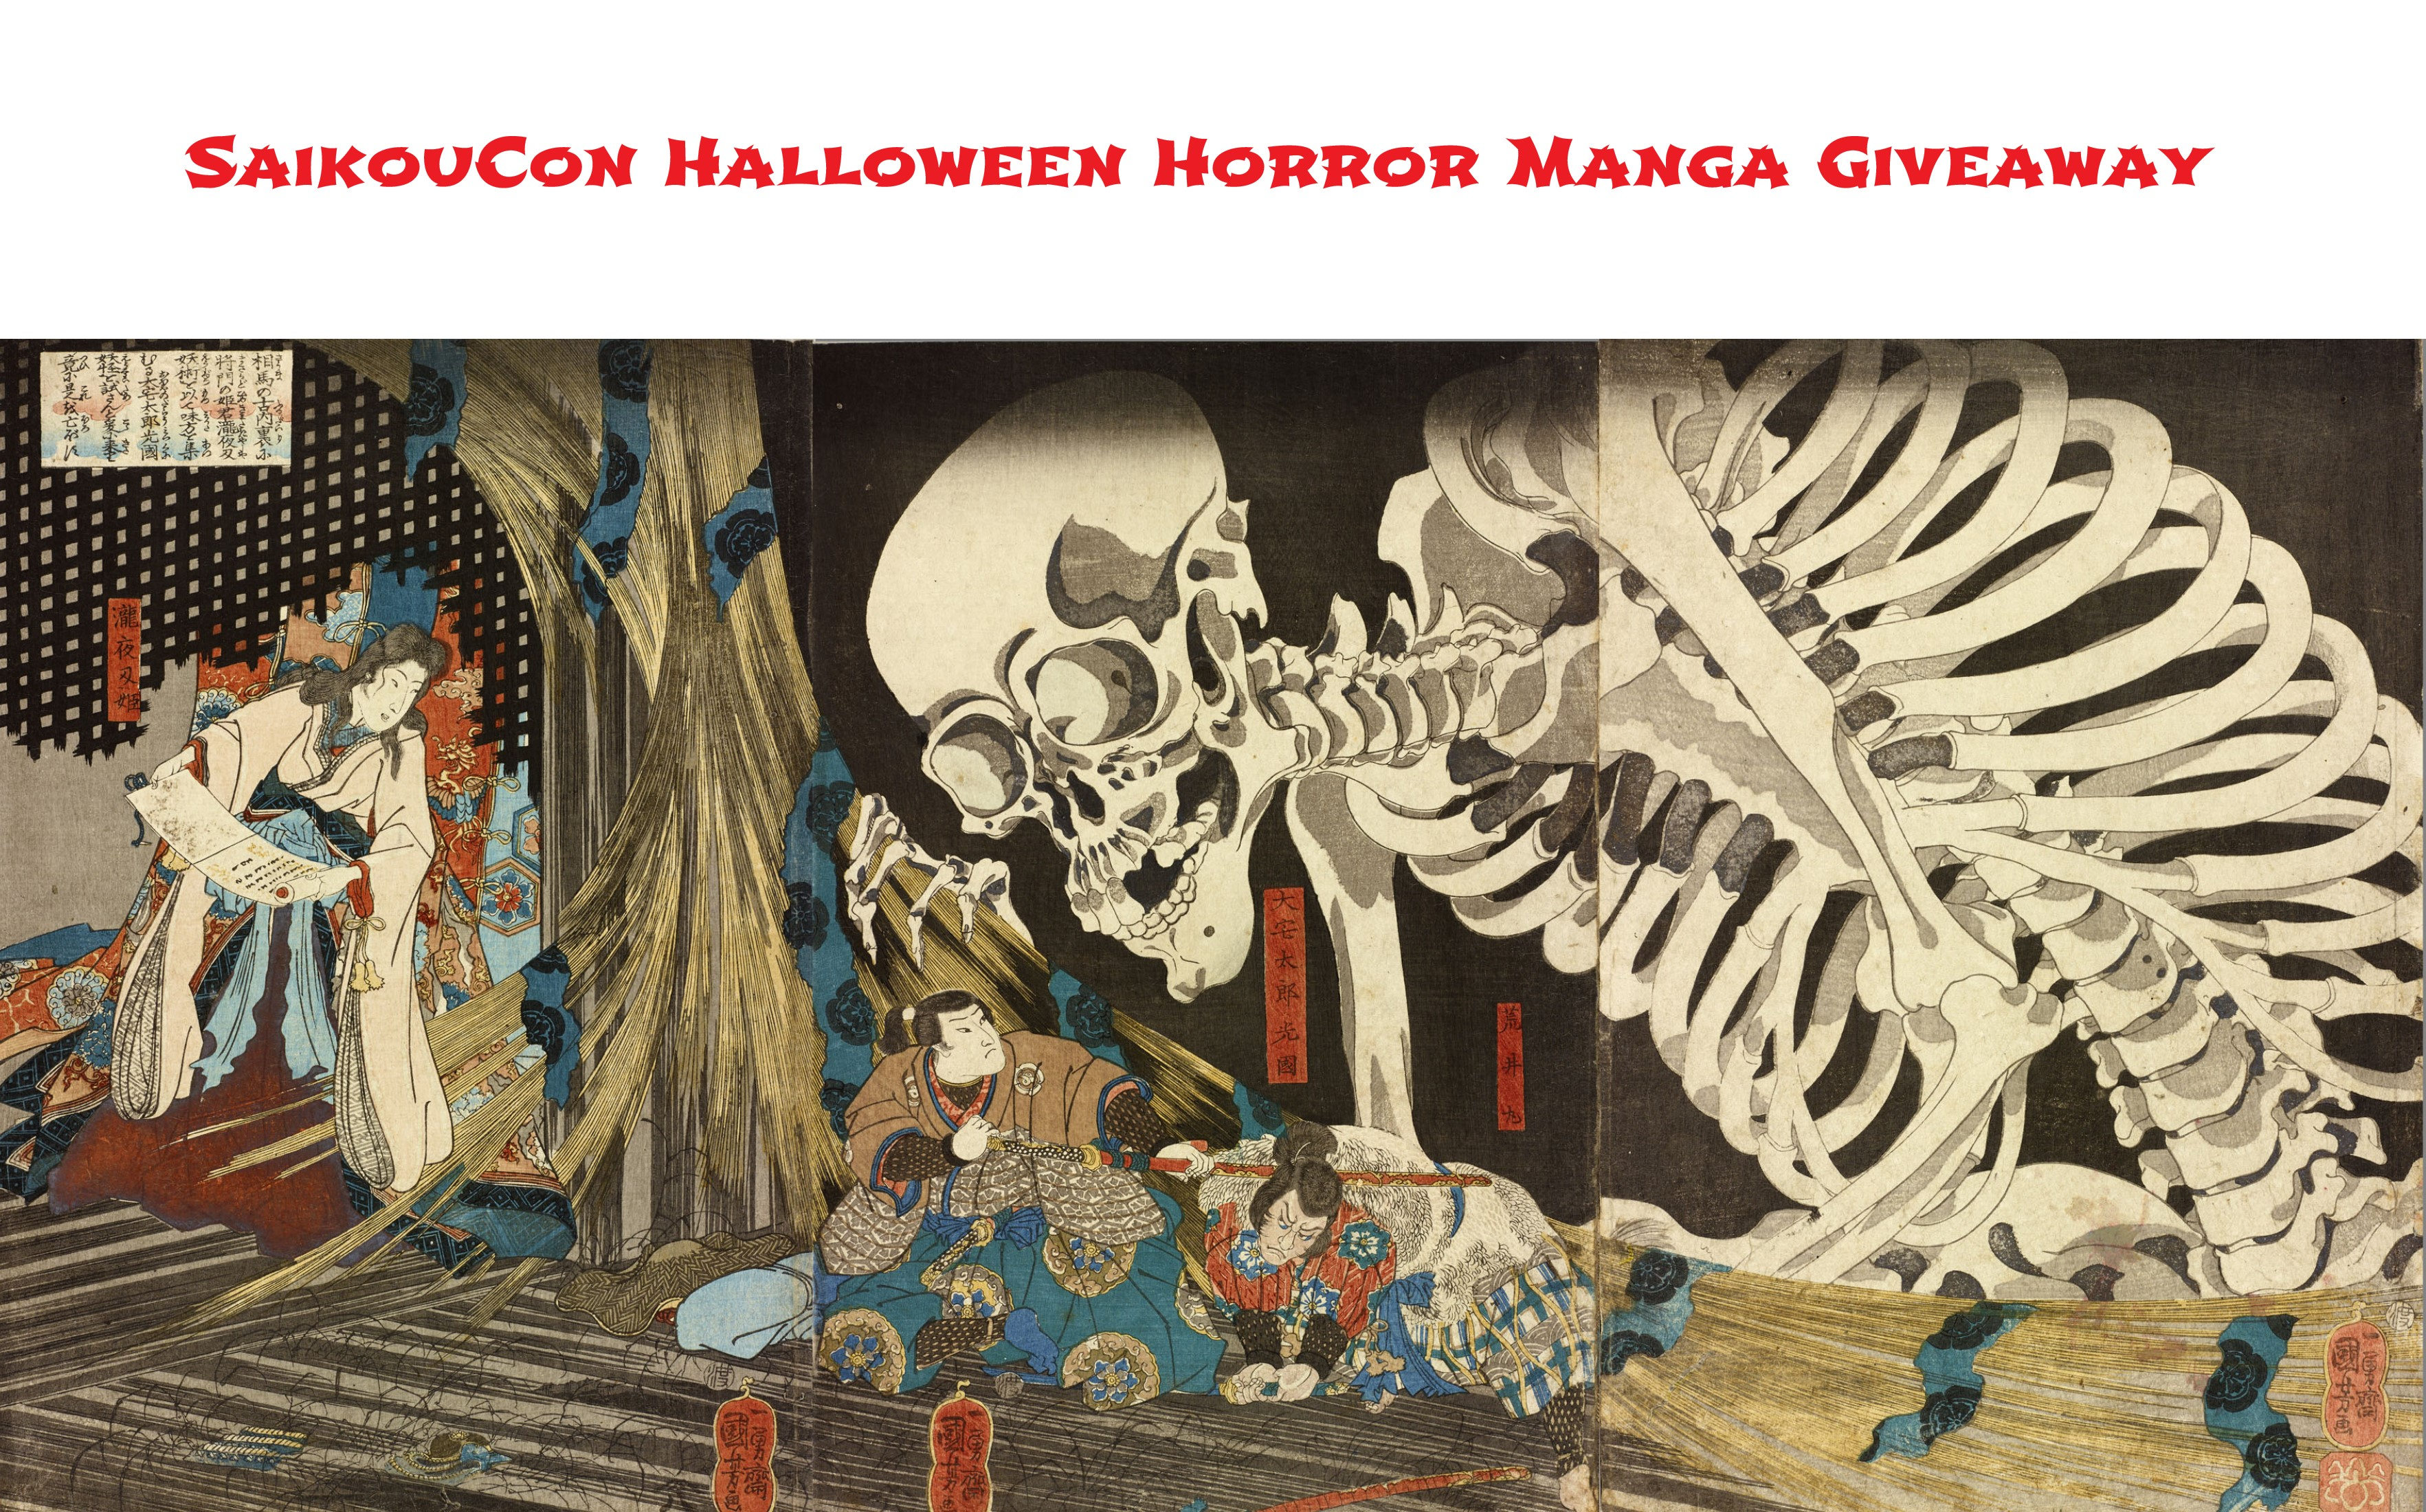 SaikouCon Halloween Horror Manga Giveaway